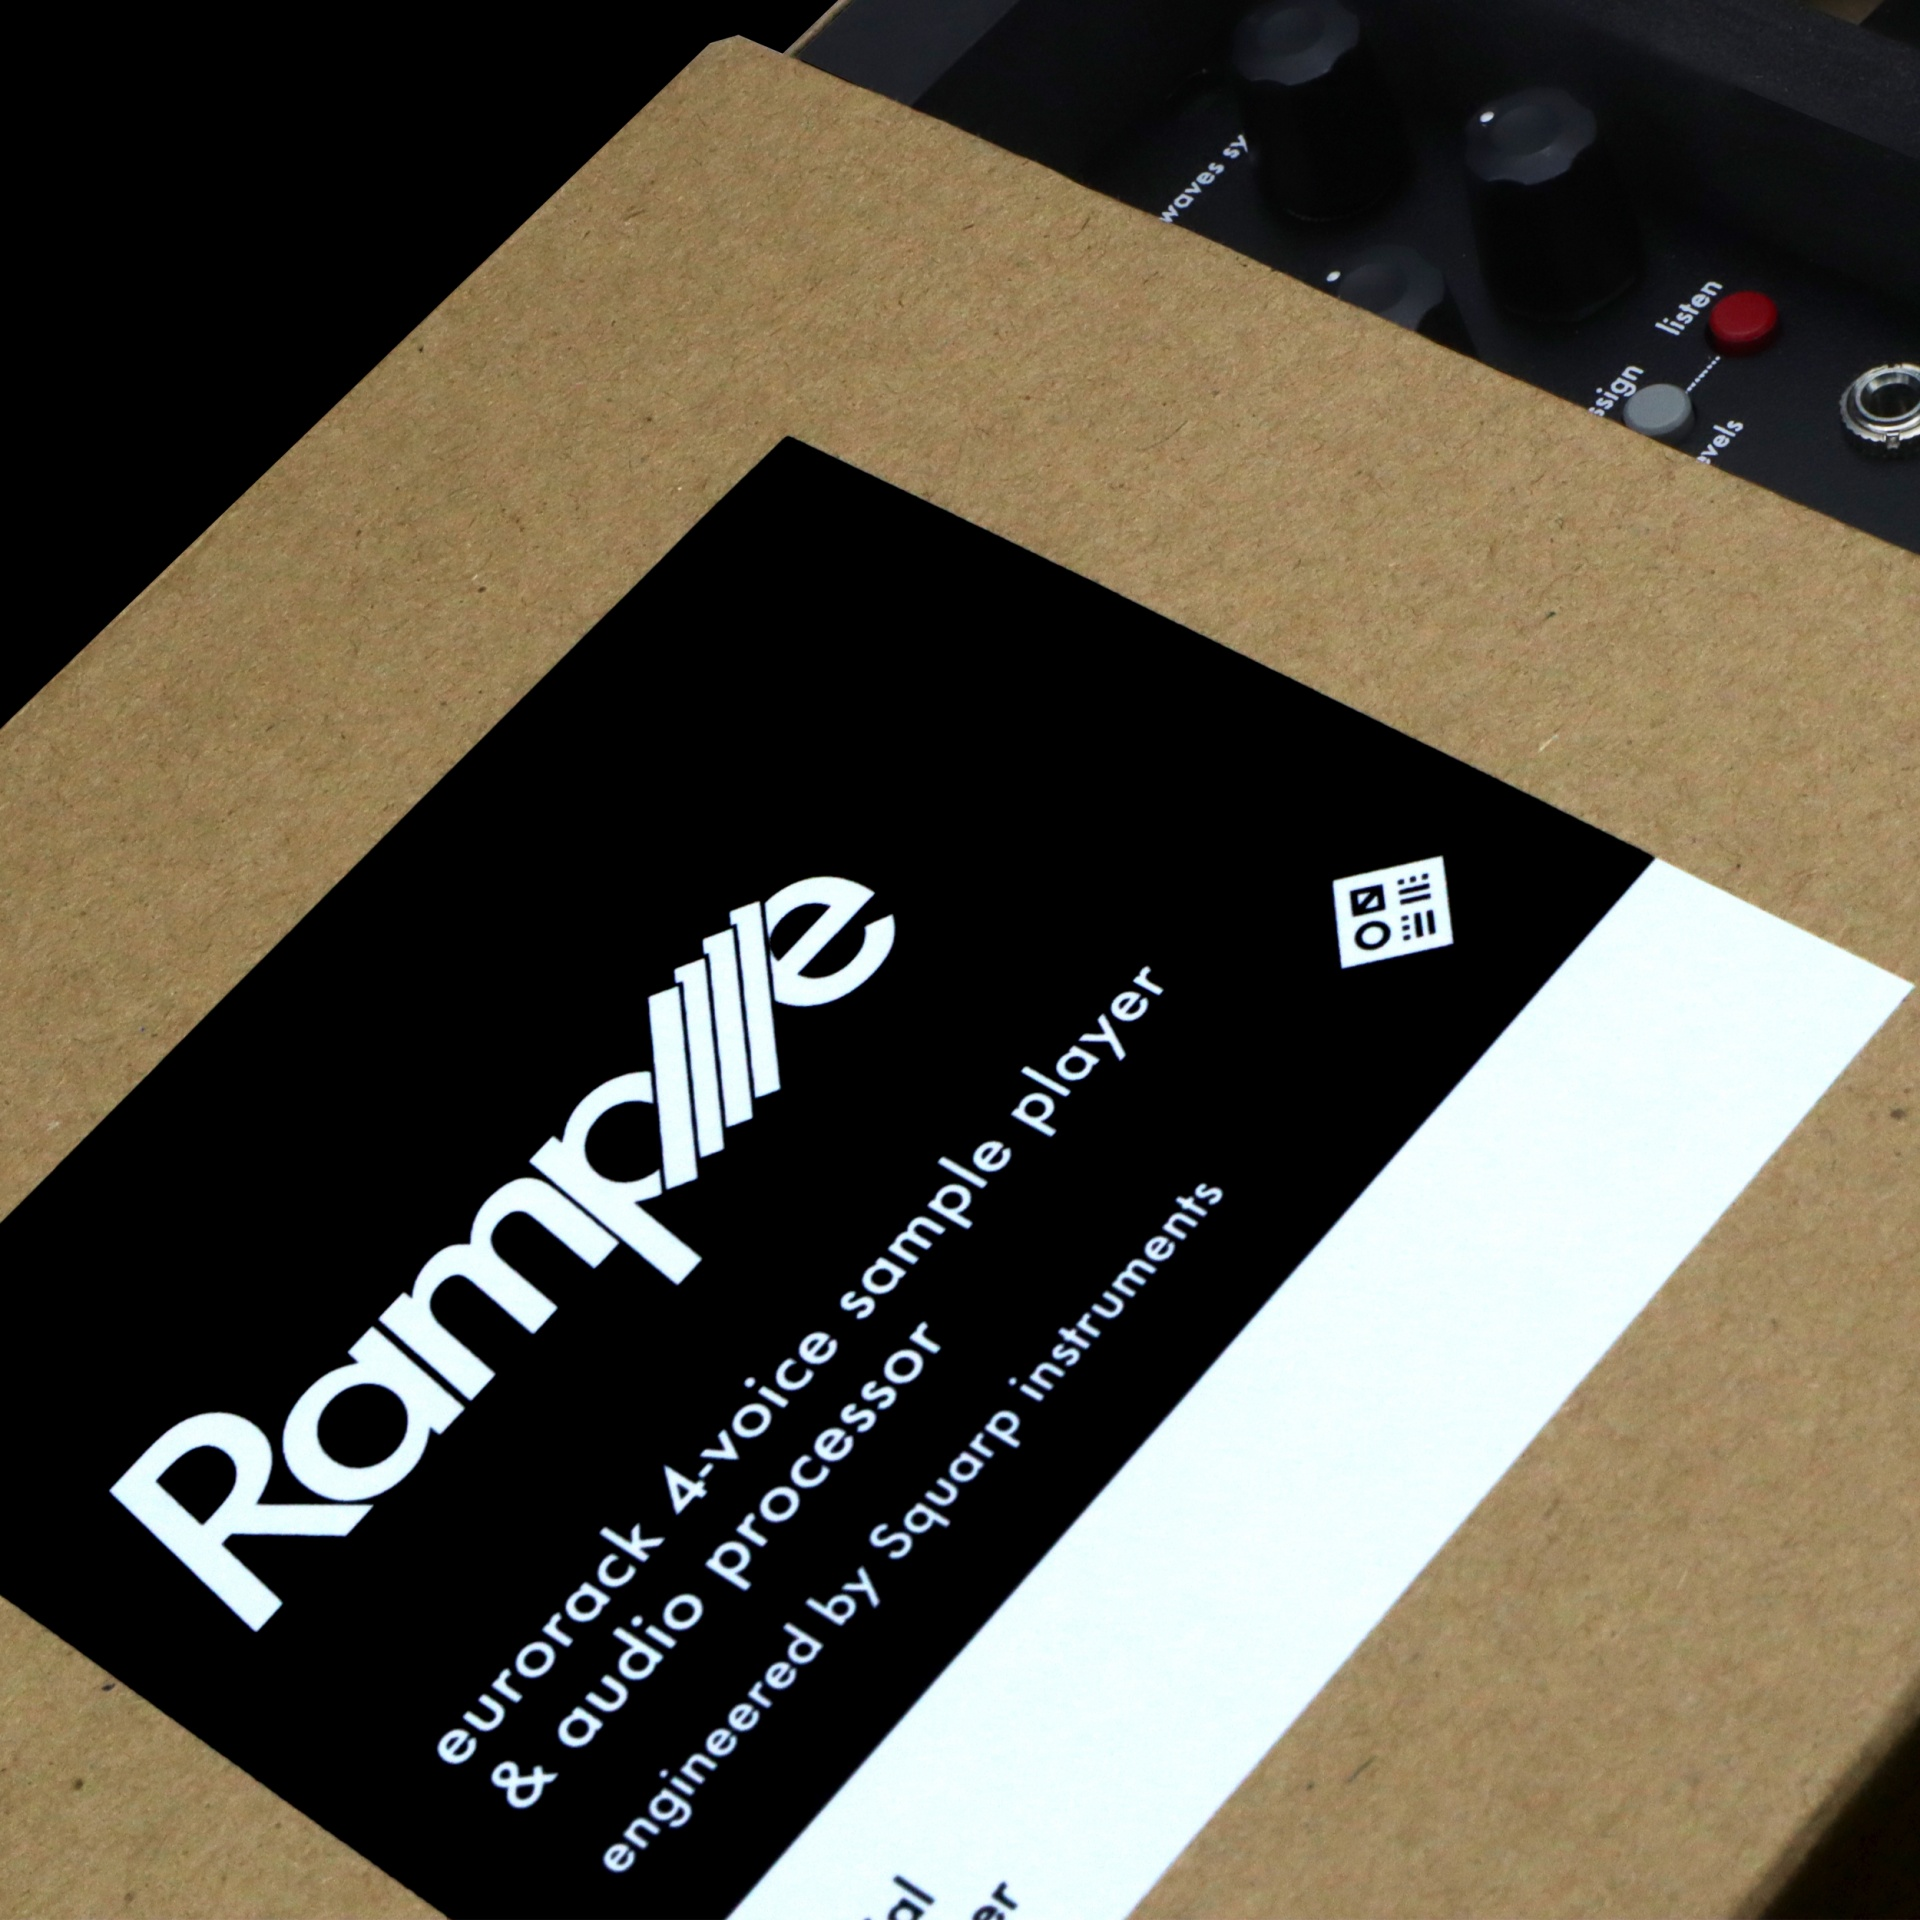 Rample wave system